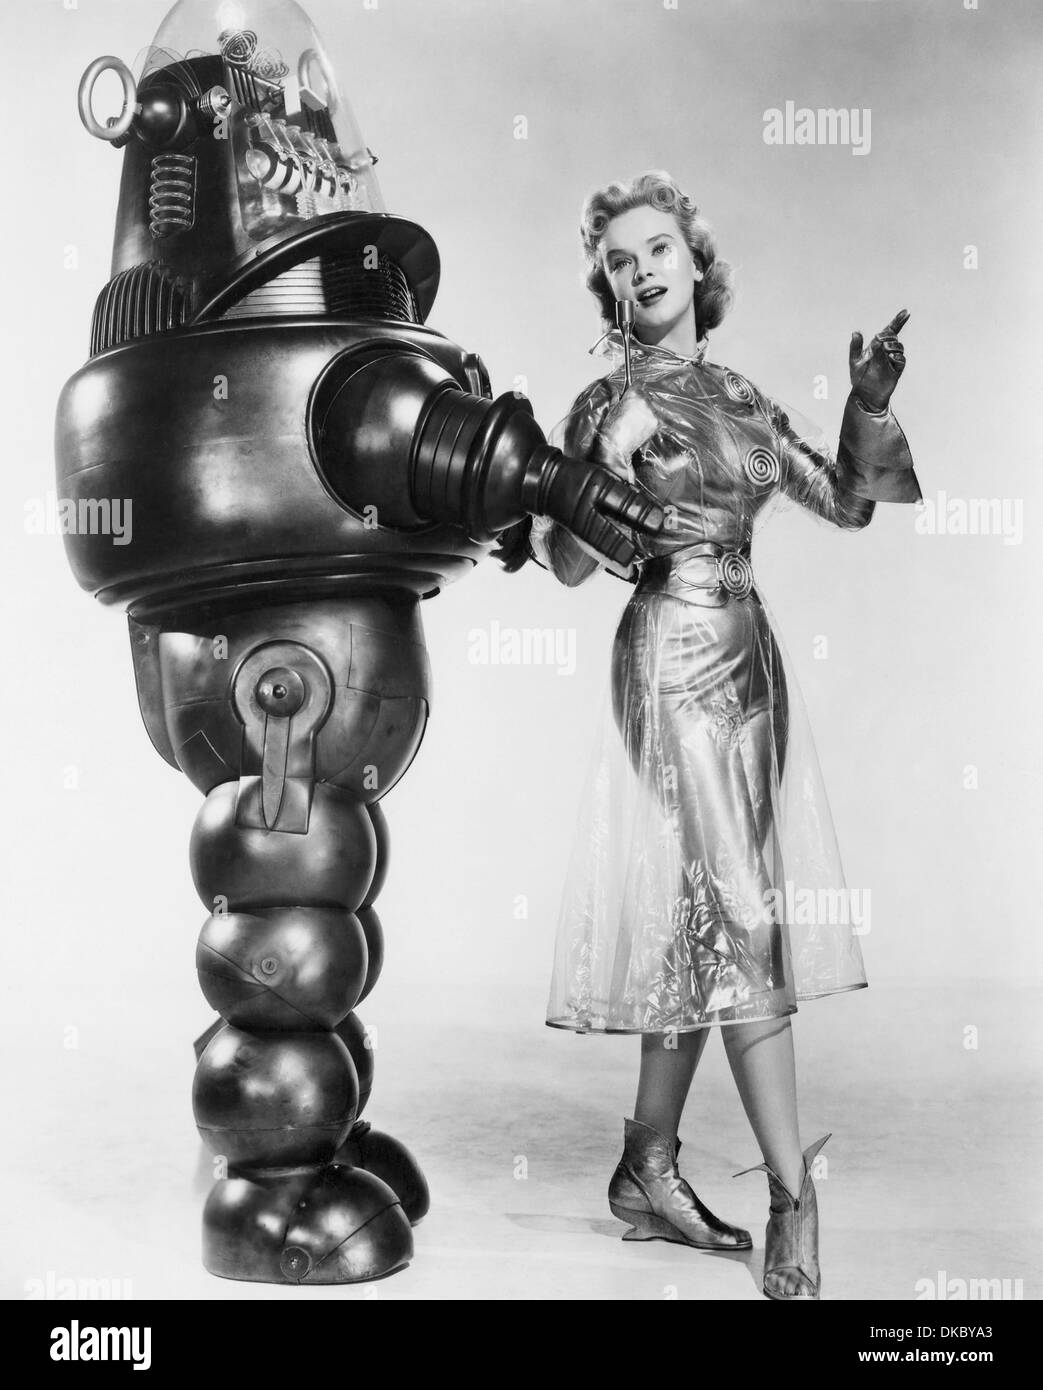 FORBIDDEN PLANET  1956 MGM sci-fi film with Anne Francis as Altaira Morbius and Robby the Robot - Stock Image